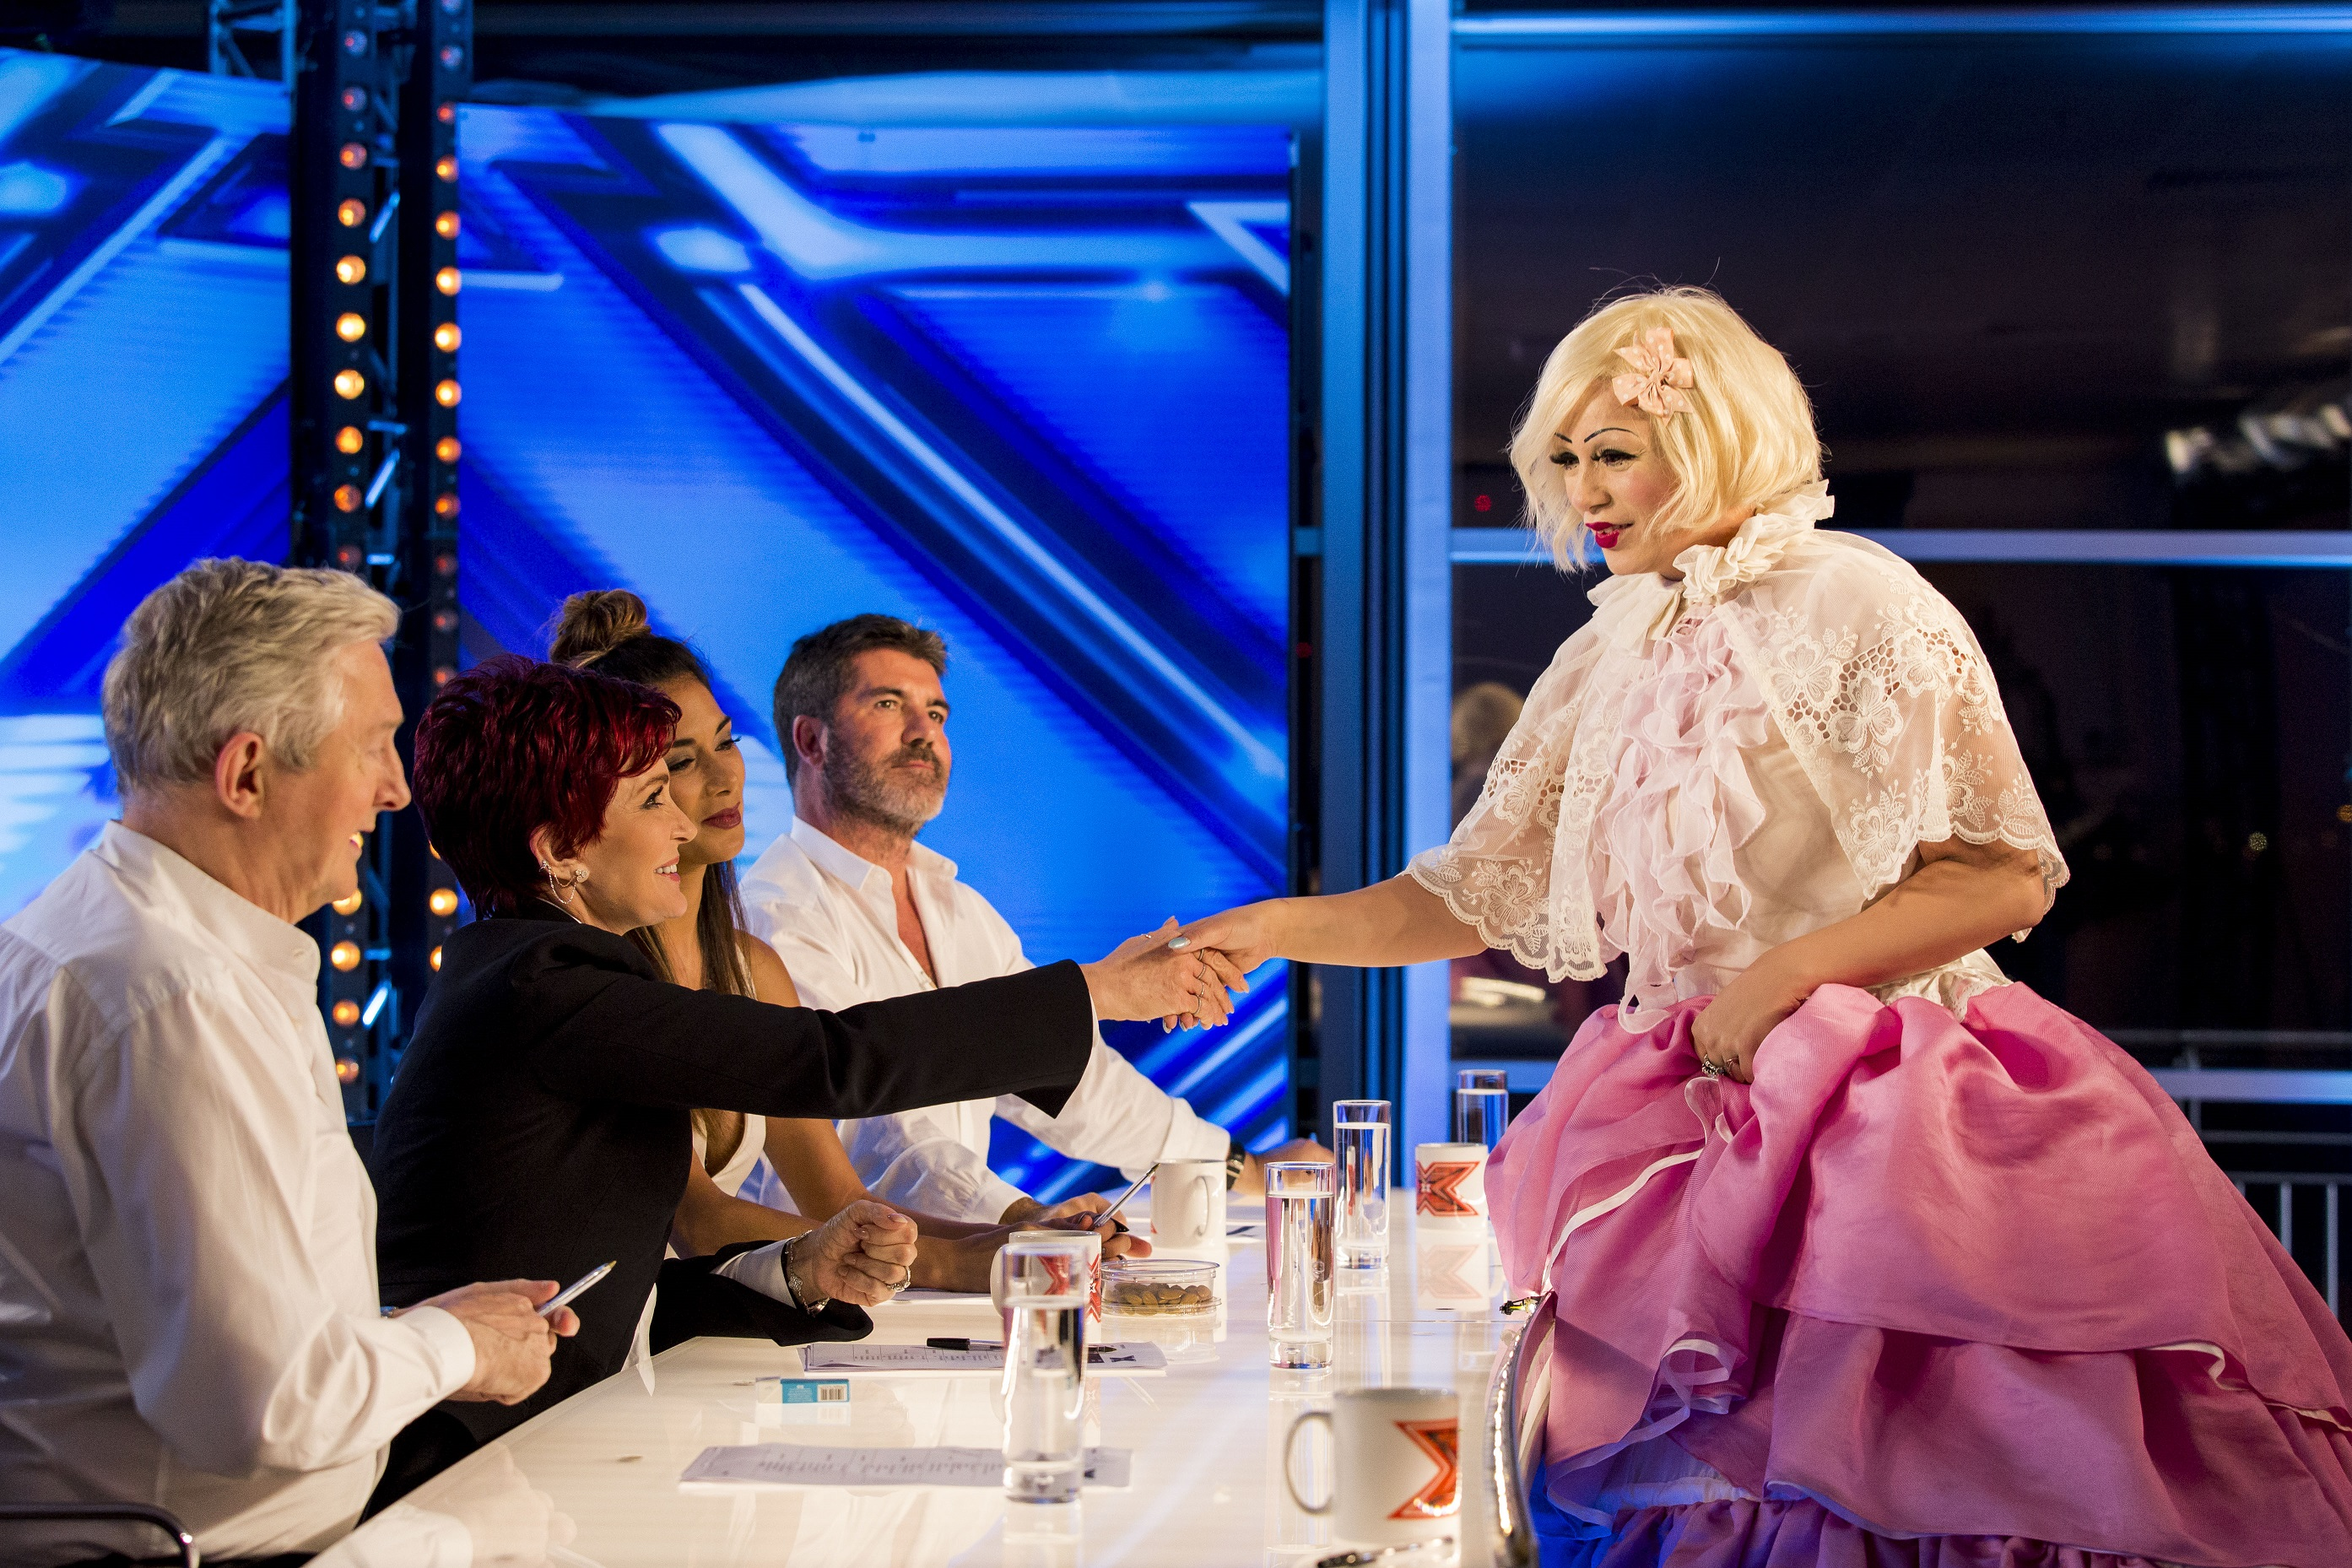 The X Factor 2016: Sunday night auditions brought us living doll Sada Vidoo, duo Tom and Laura, Marianna Zappi and more